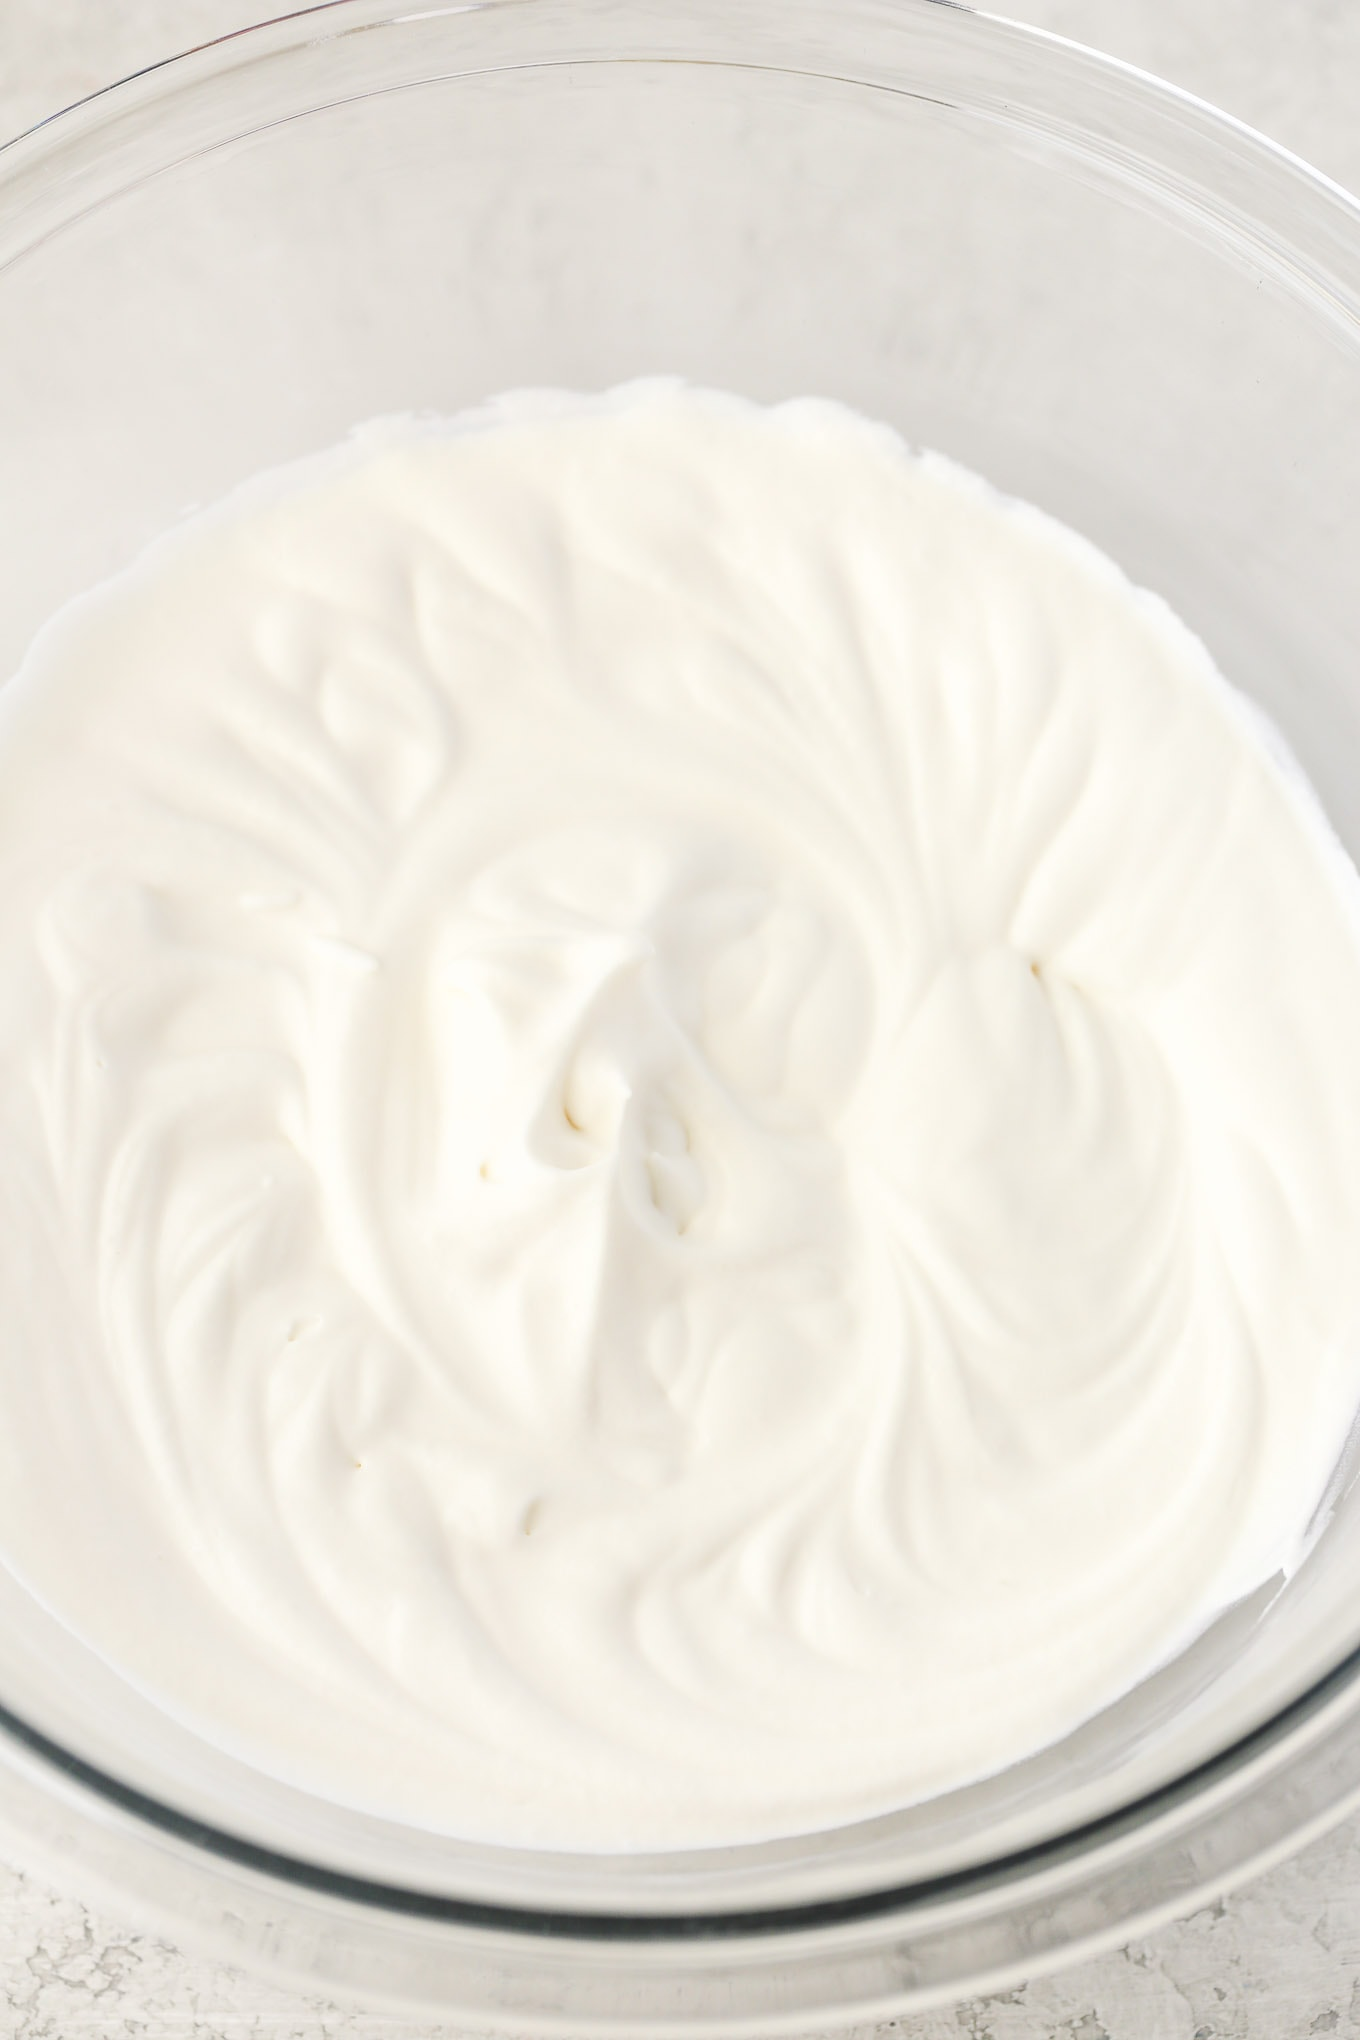 Learn how easy it is to make stabilized whipped cream with this step-by-step tutorial. This whipped cream is perfectly sweet and holds its shape for days!